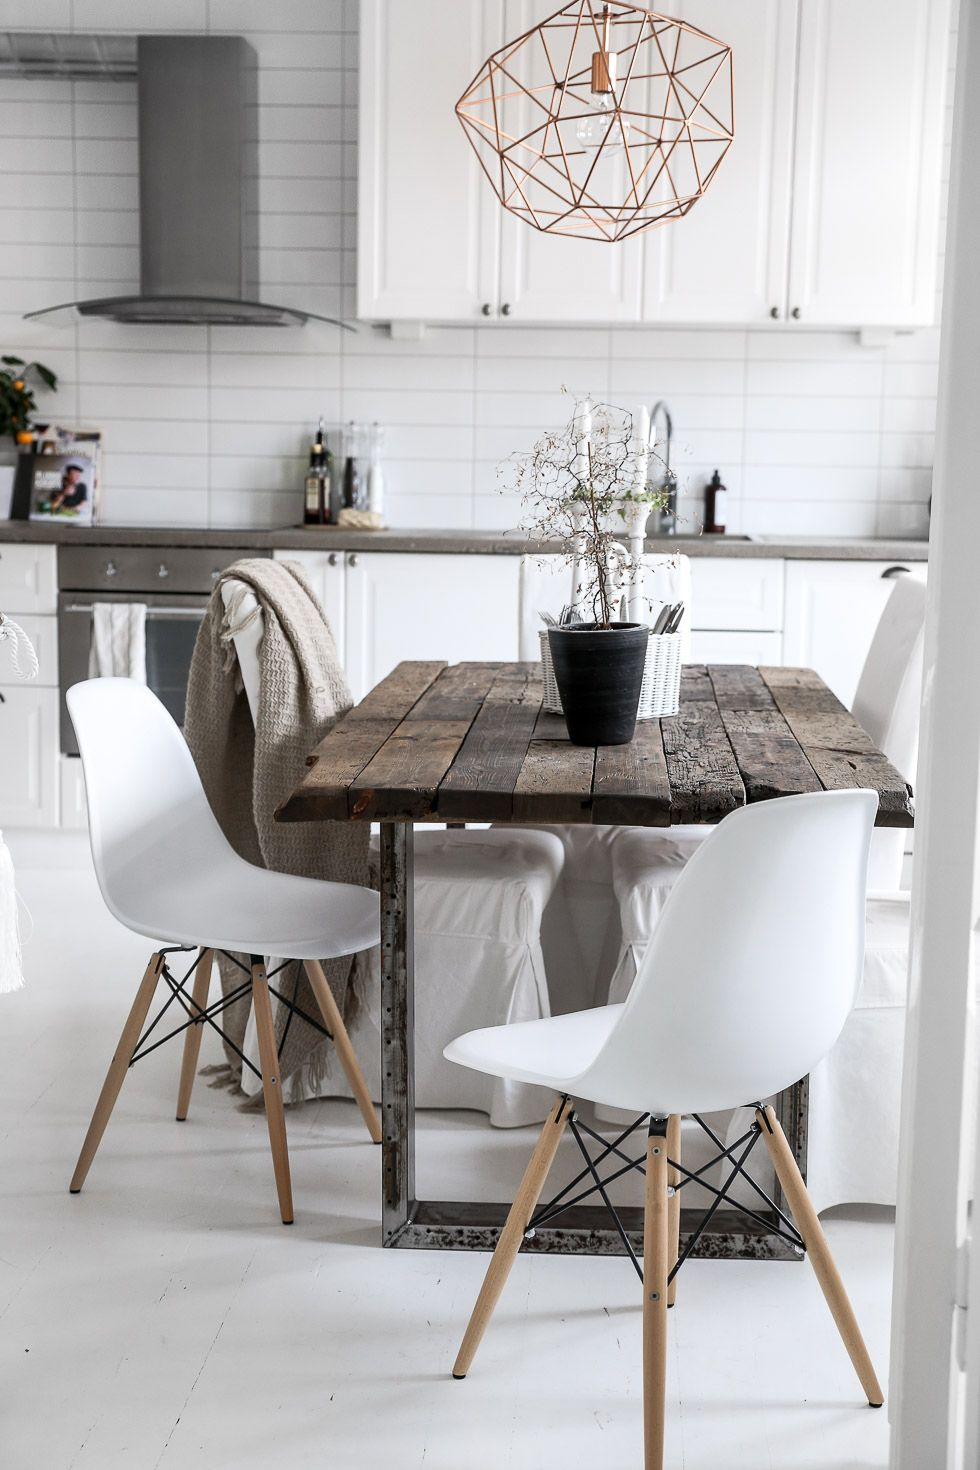 love the rustic table, could be a diy | scandinavian style decor